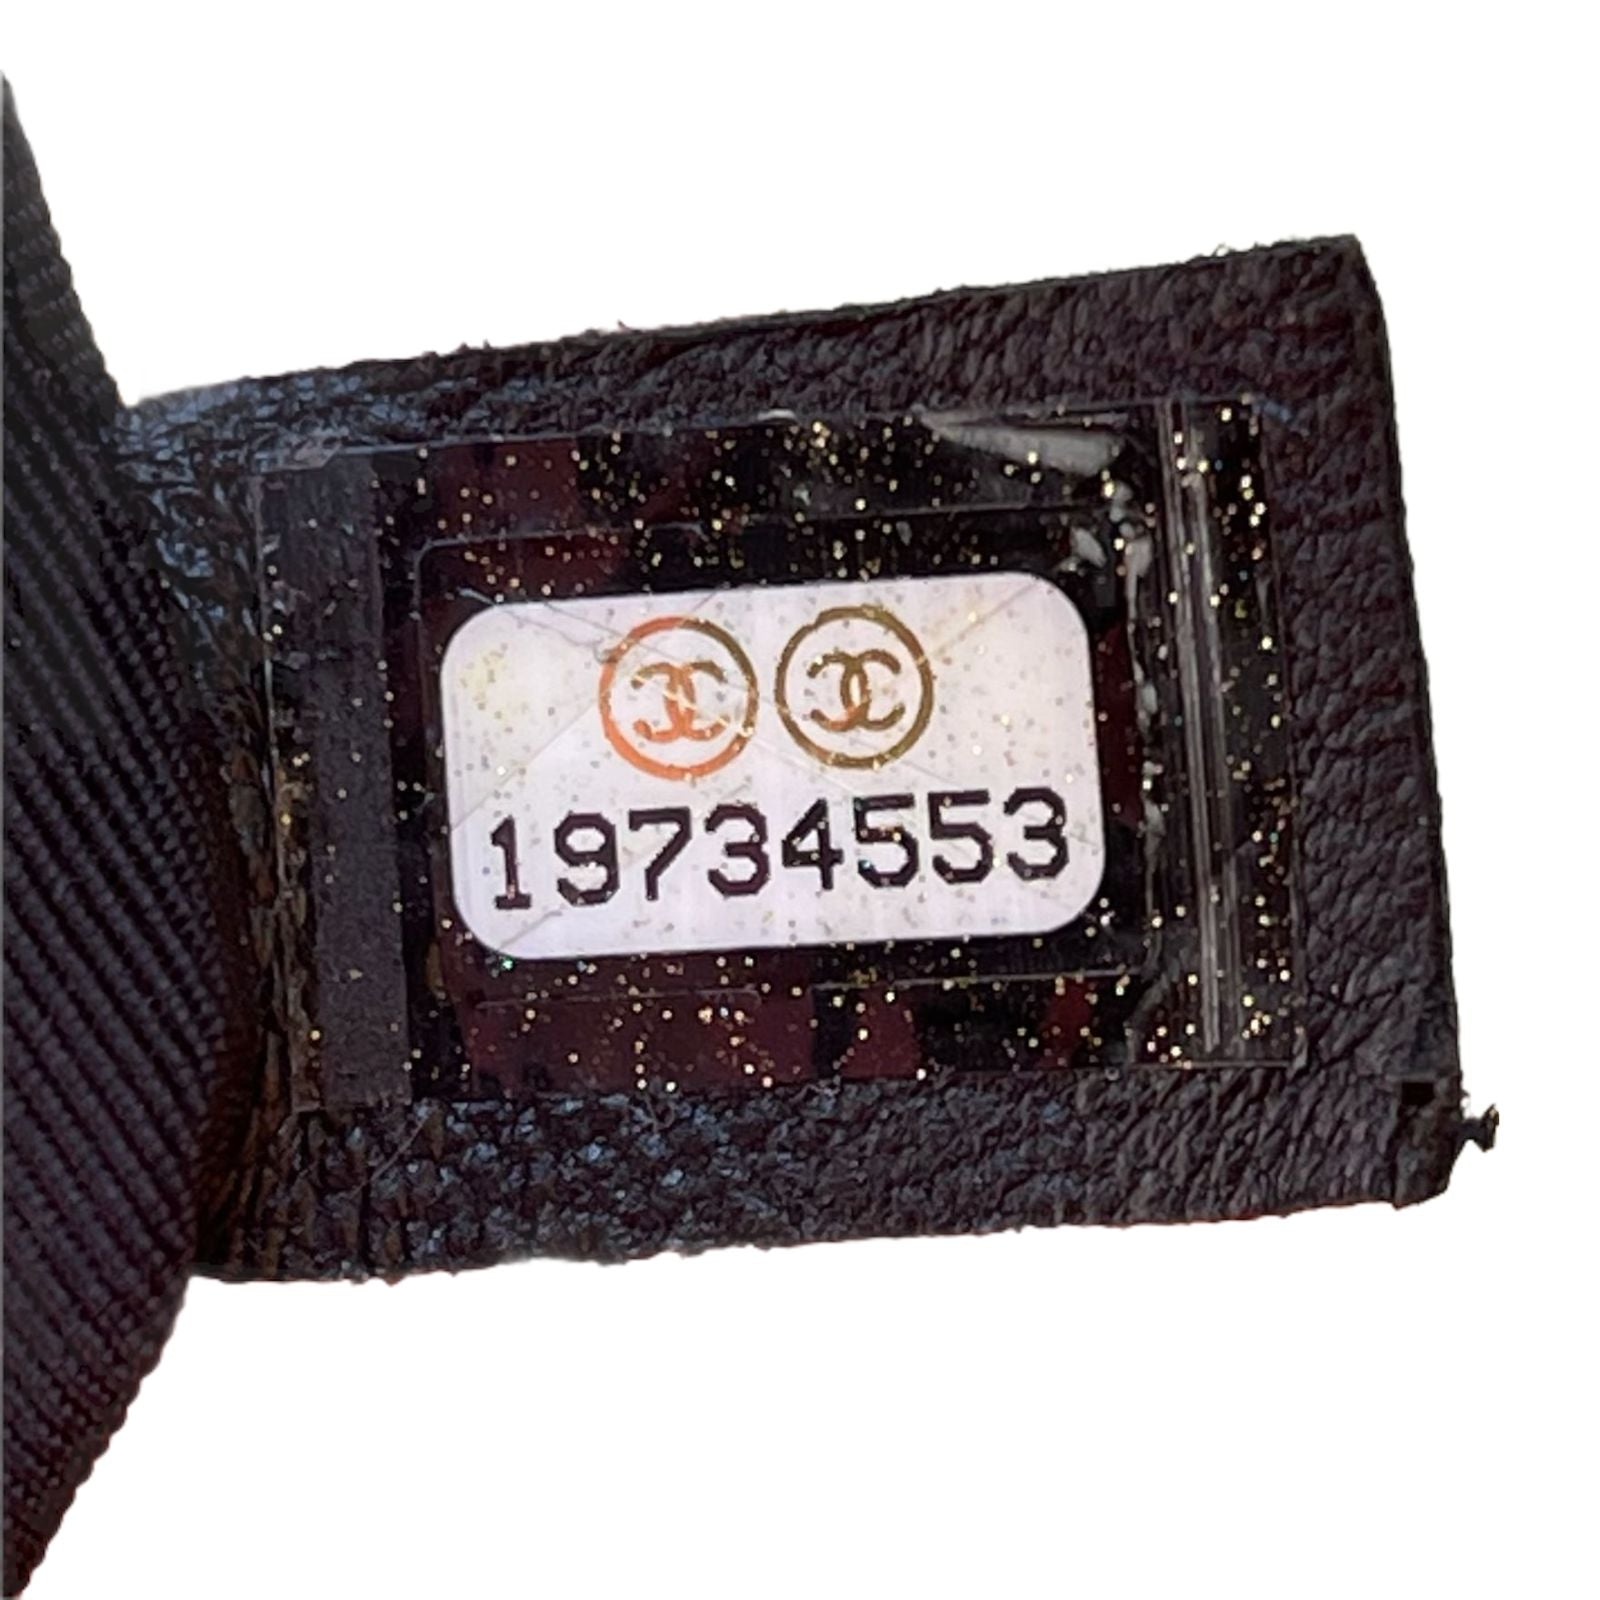 Chanel Serial Codes